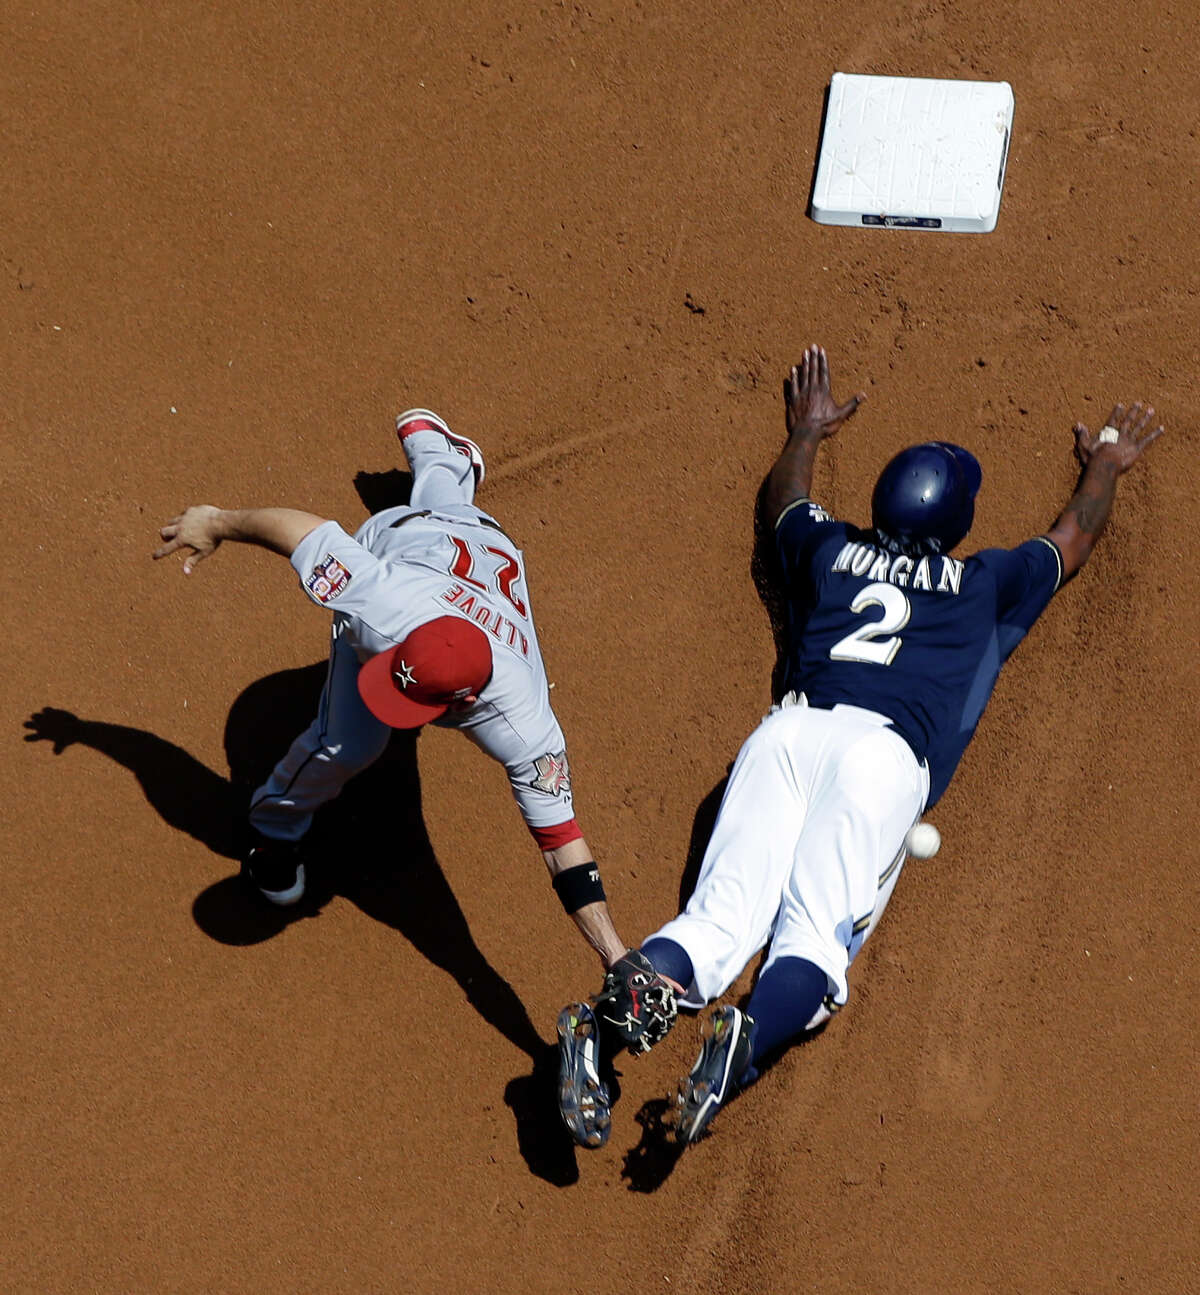 The throw gets away from Jose Altuve on a first-inning steal of second by the Brewers' Nyjer Morgan.